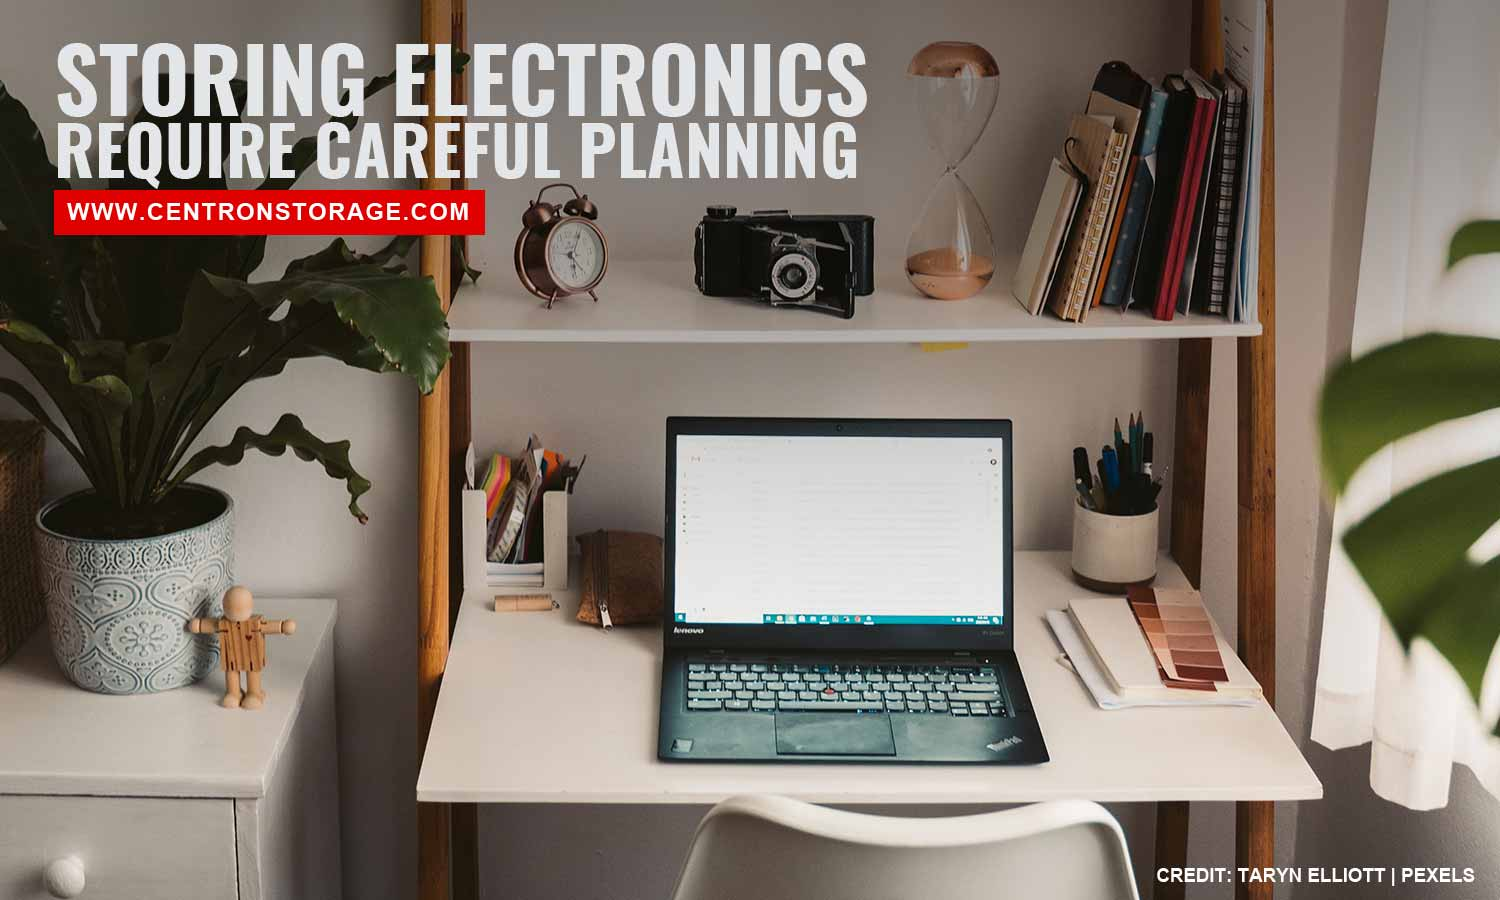 Storing electronics require careful planning